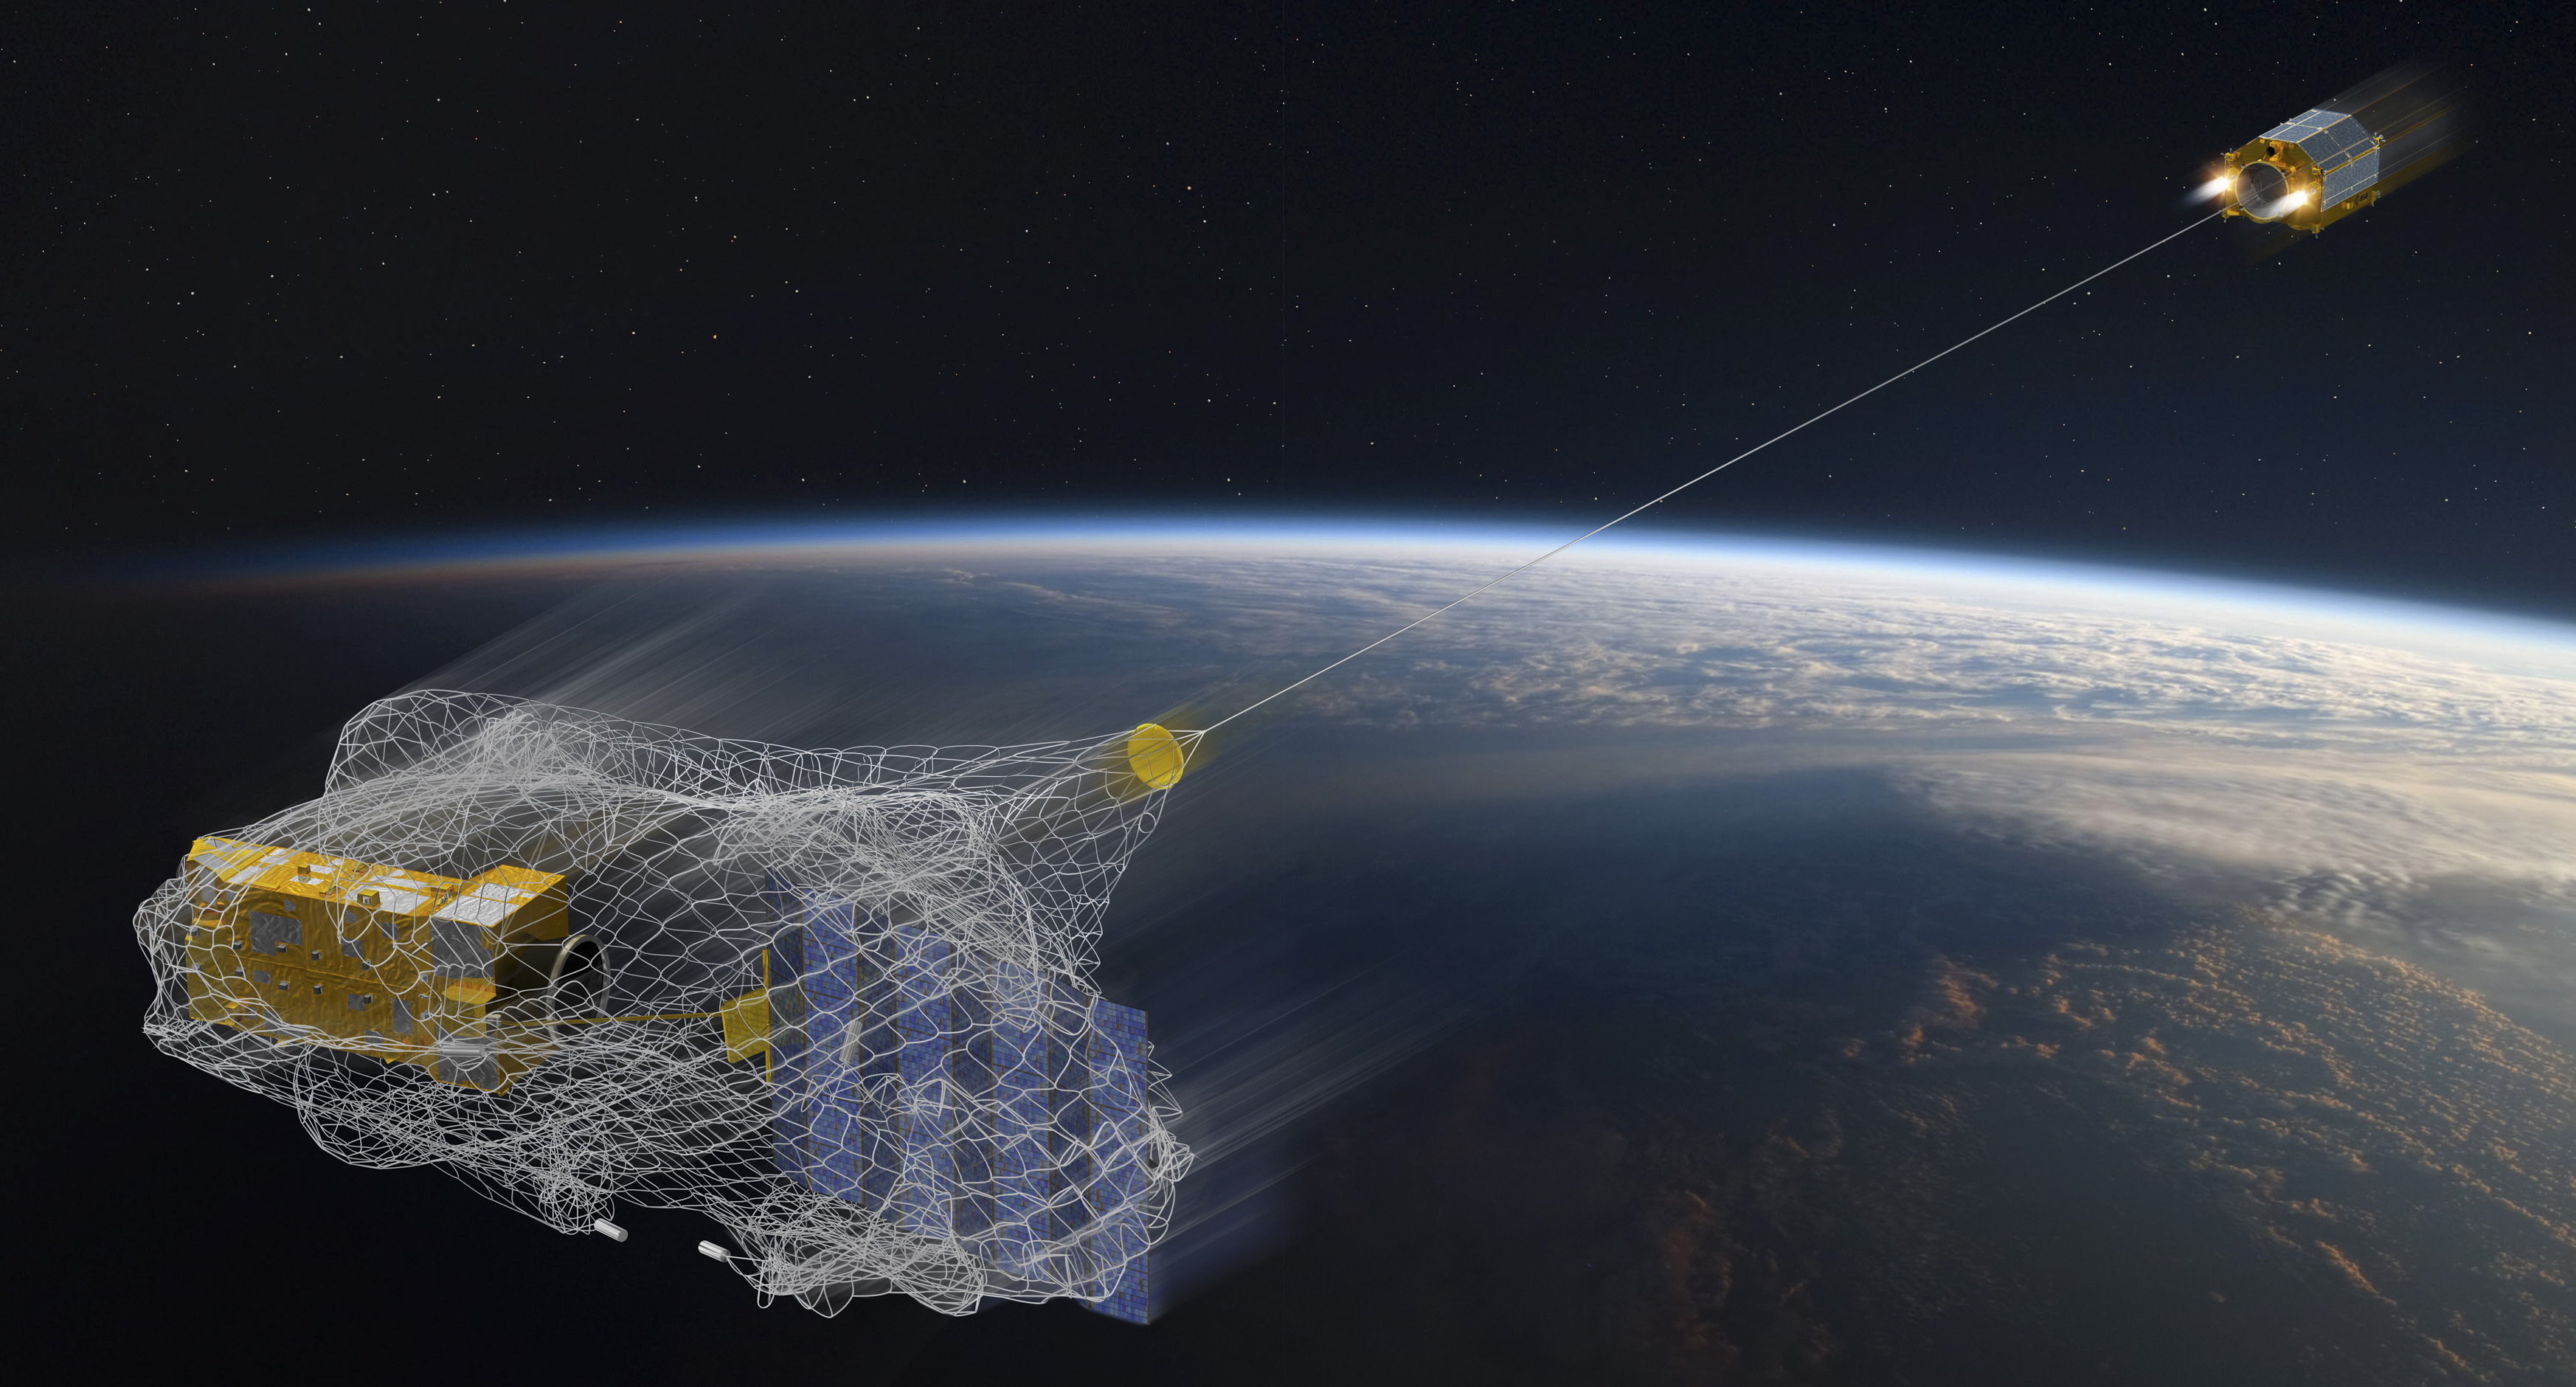 Robots will clean up space junk in Low Earth Orbit